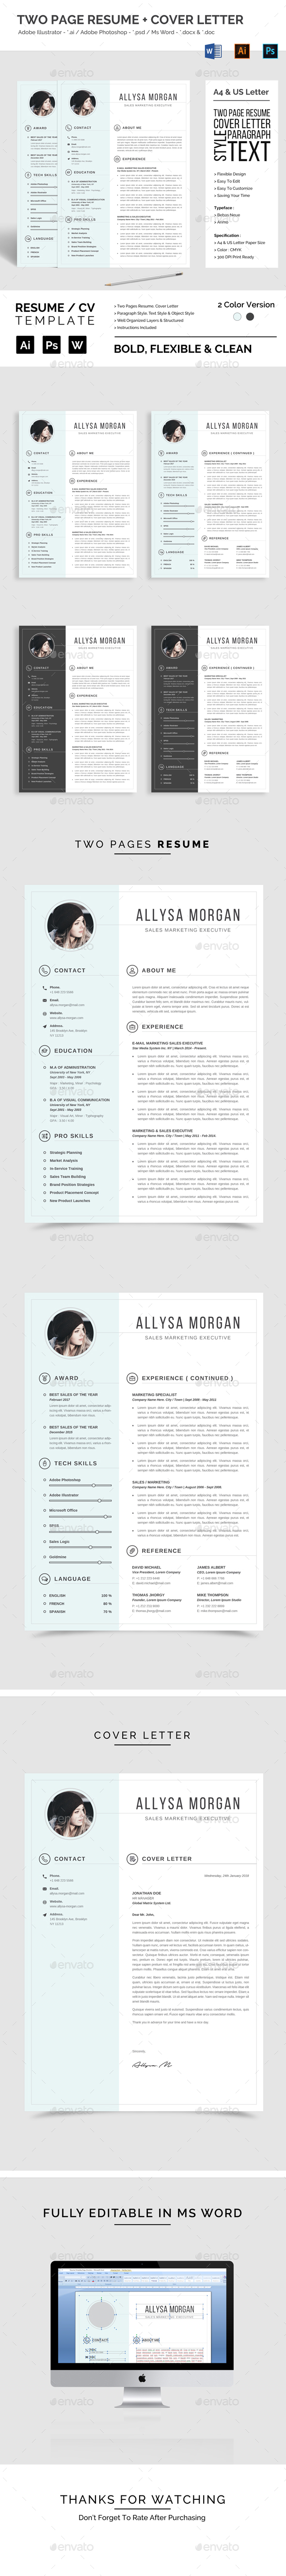 resume templates from graphicriver - Envato Resume Templates